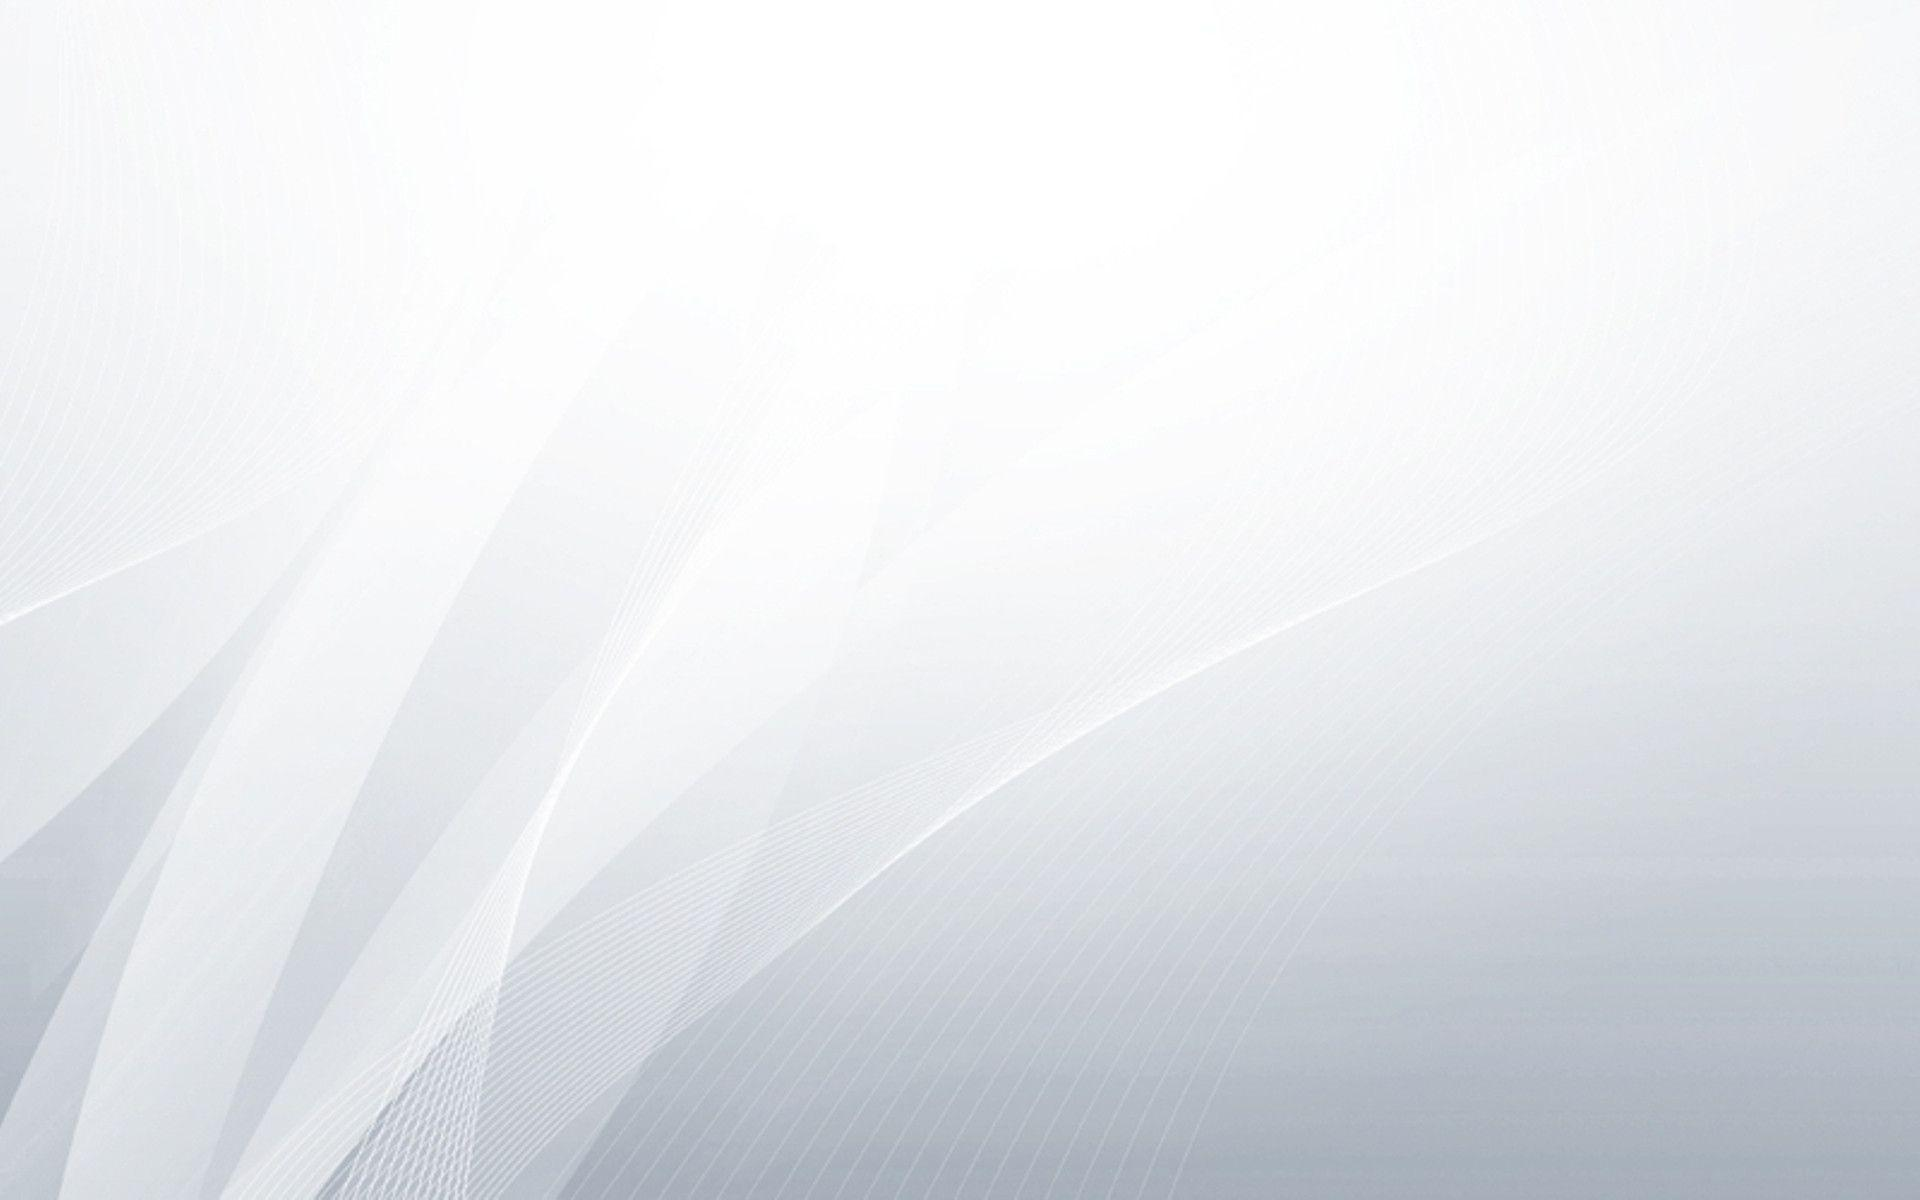 White Abstract Wallpapers   Top White Abstract Backgrounds 1920x1200